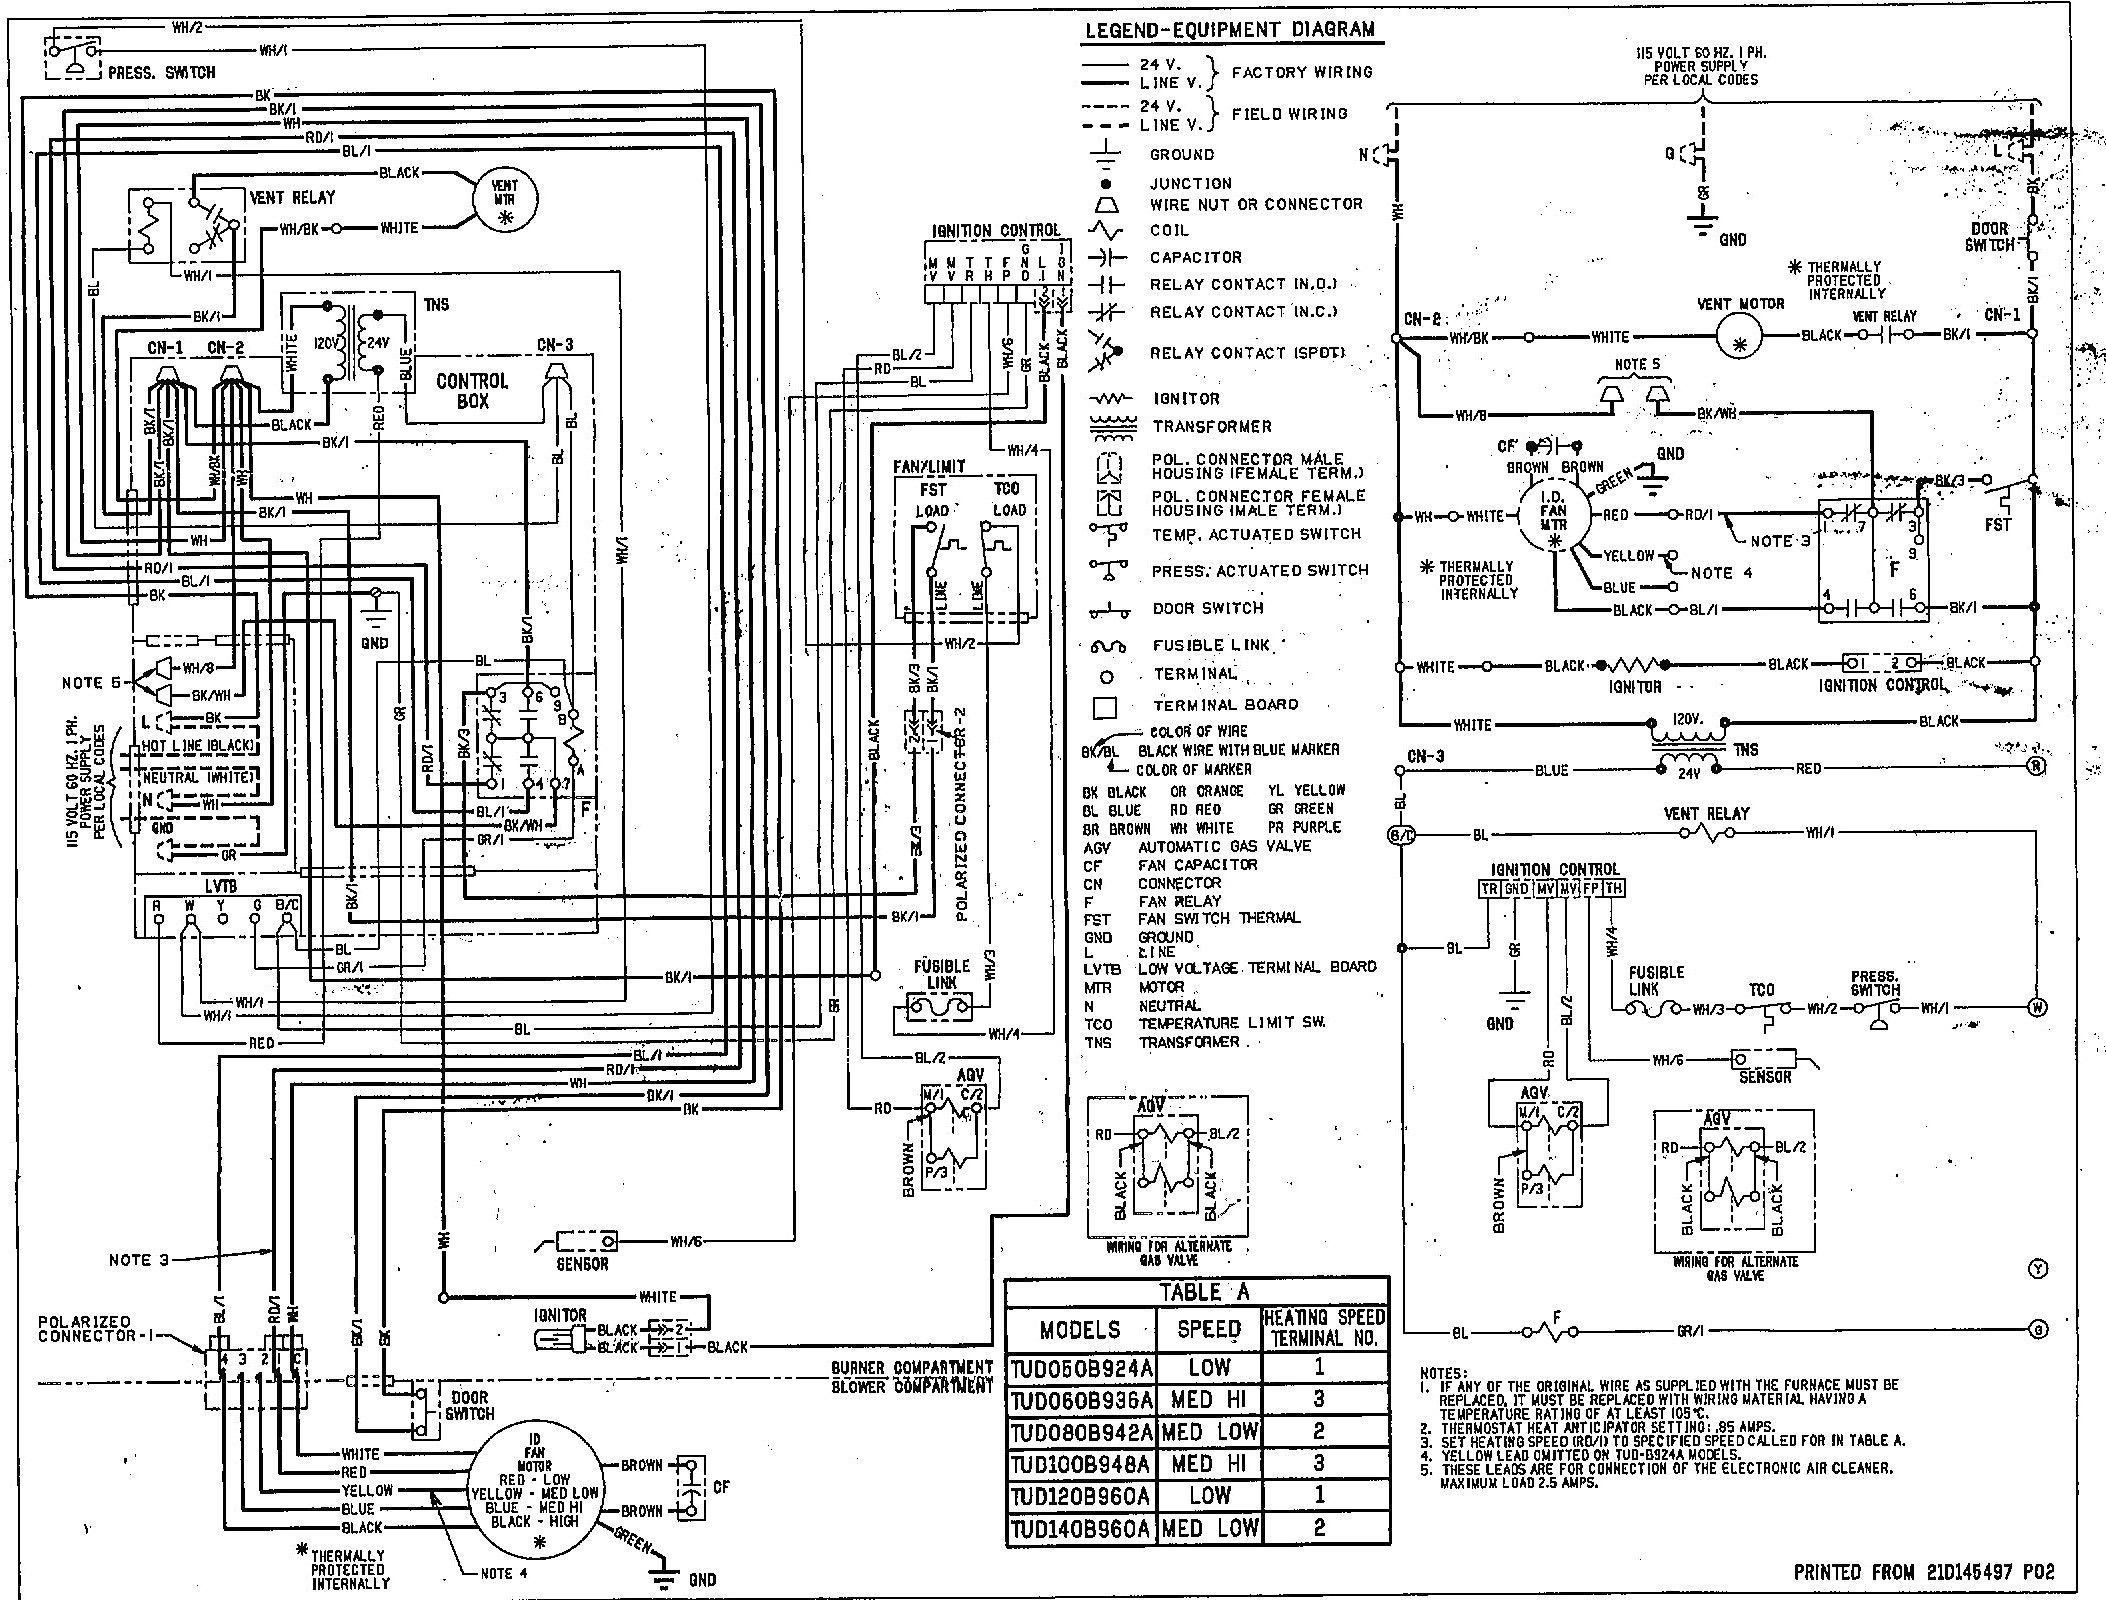 Williams Wall Furnace Wiring Diagram Best Of in 2020 | Thermostat wiring, Electric  furnace, Heat pump | Williams Wall Furnace Wiring Diagram Electric |  | Pinterest